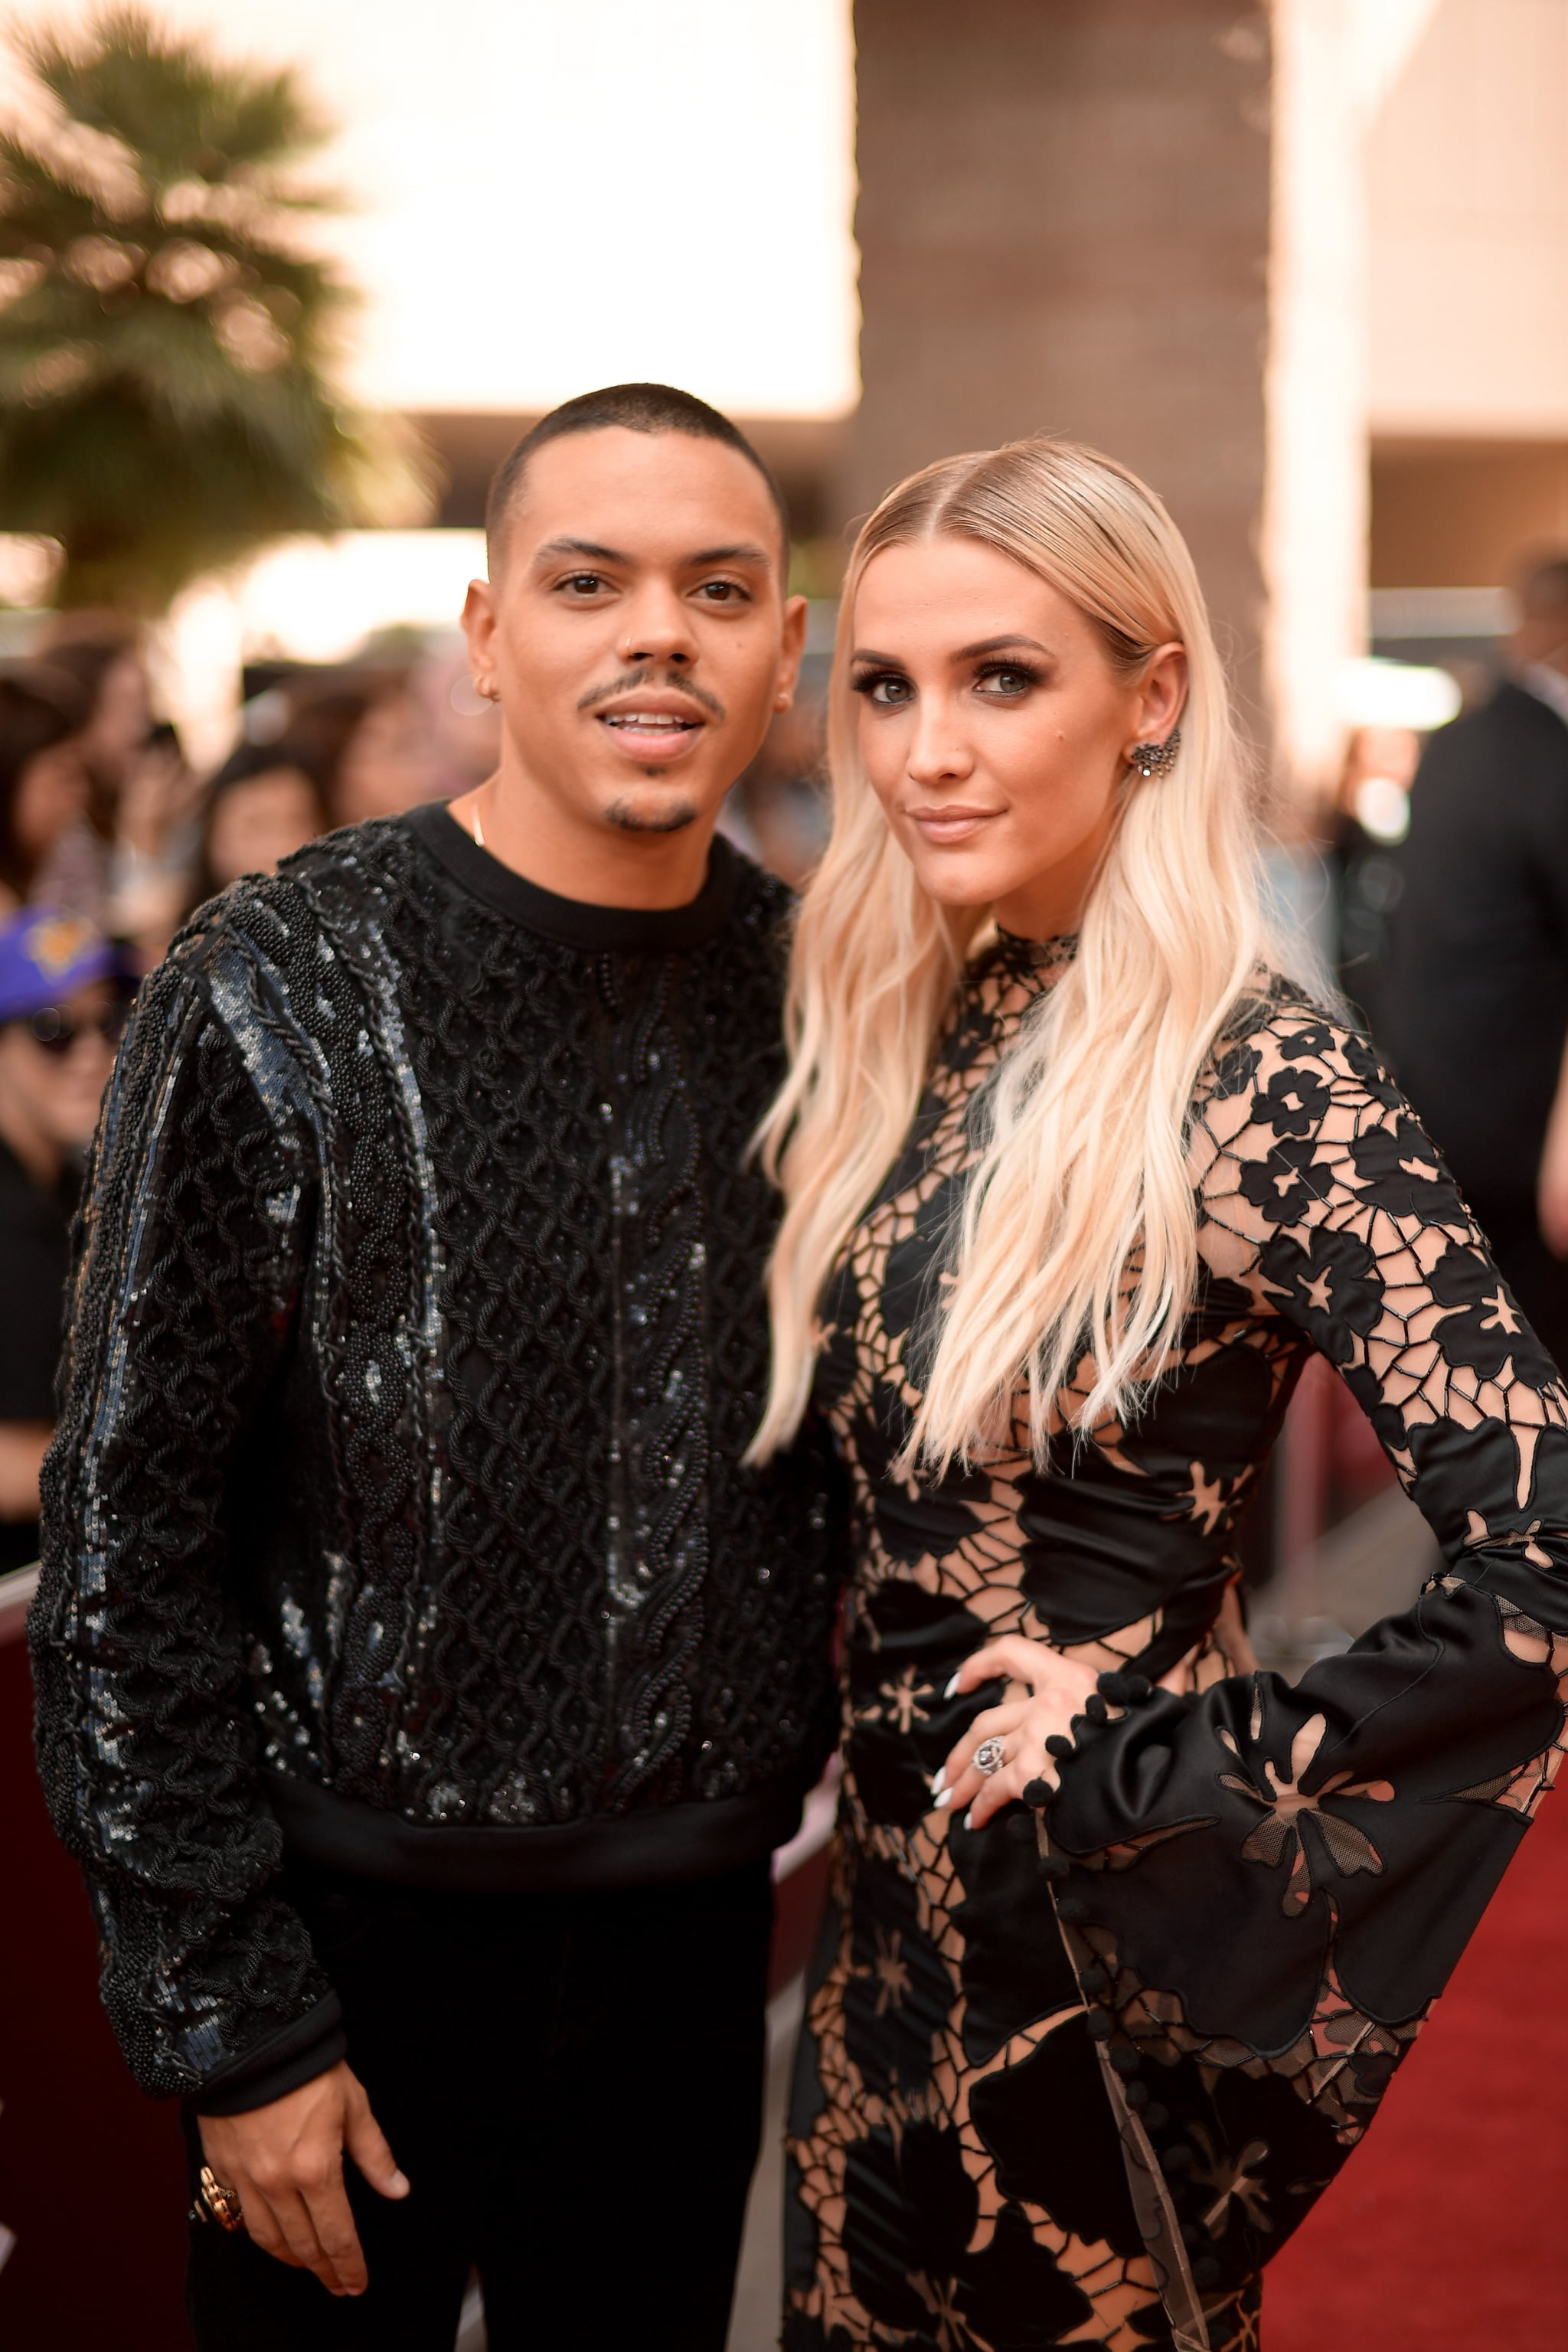 LAS VEGAS, NV - MAY 20:  Actor Evan Ross (L) and recording artist Ashlee Simpson attend the 2018 Billboard Music Awards at MGM Grand Garden Arena on May 20, 2018 in Las Vegas, Nevada.  (Photo by Matt Winkelmeyer/Getty Images for dcp)